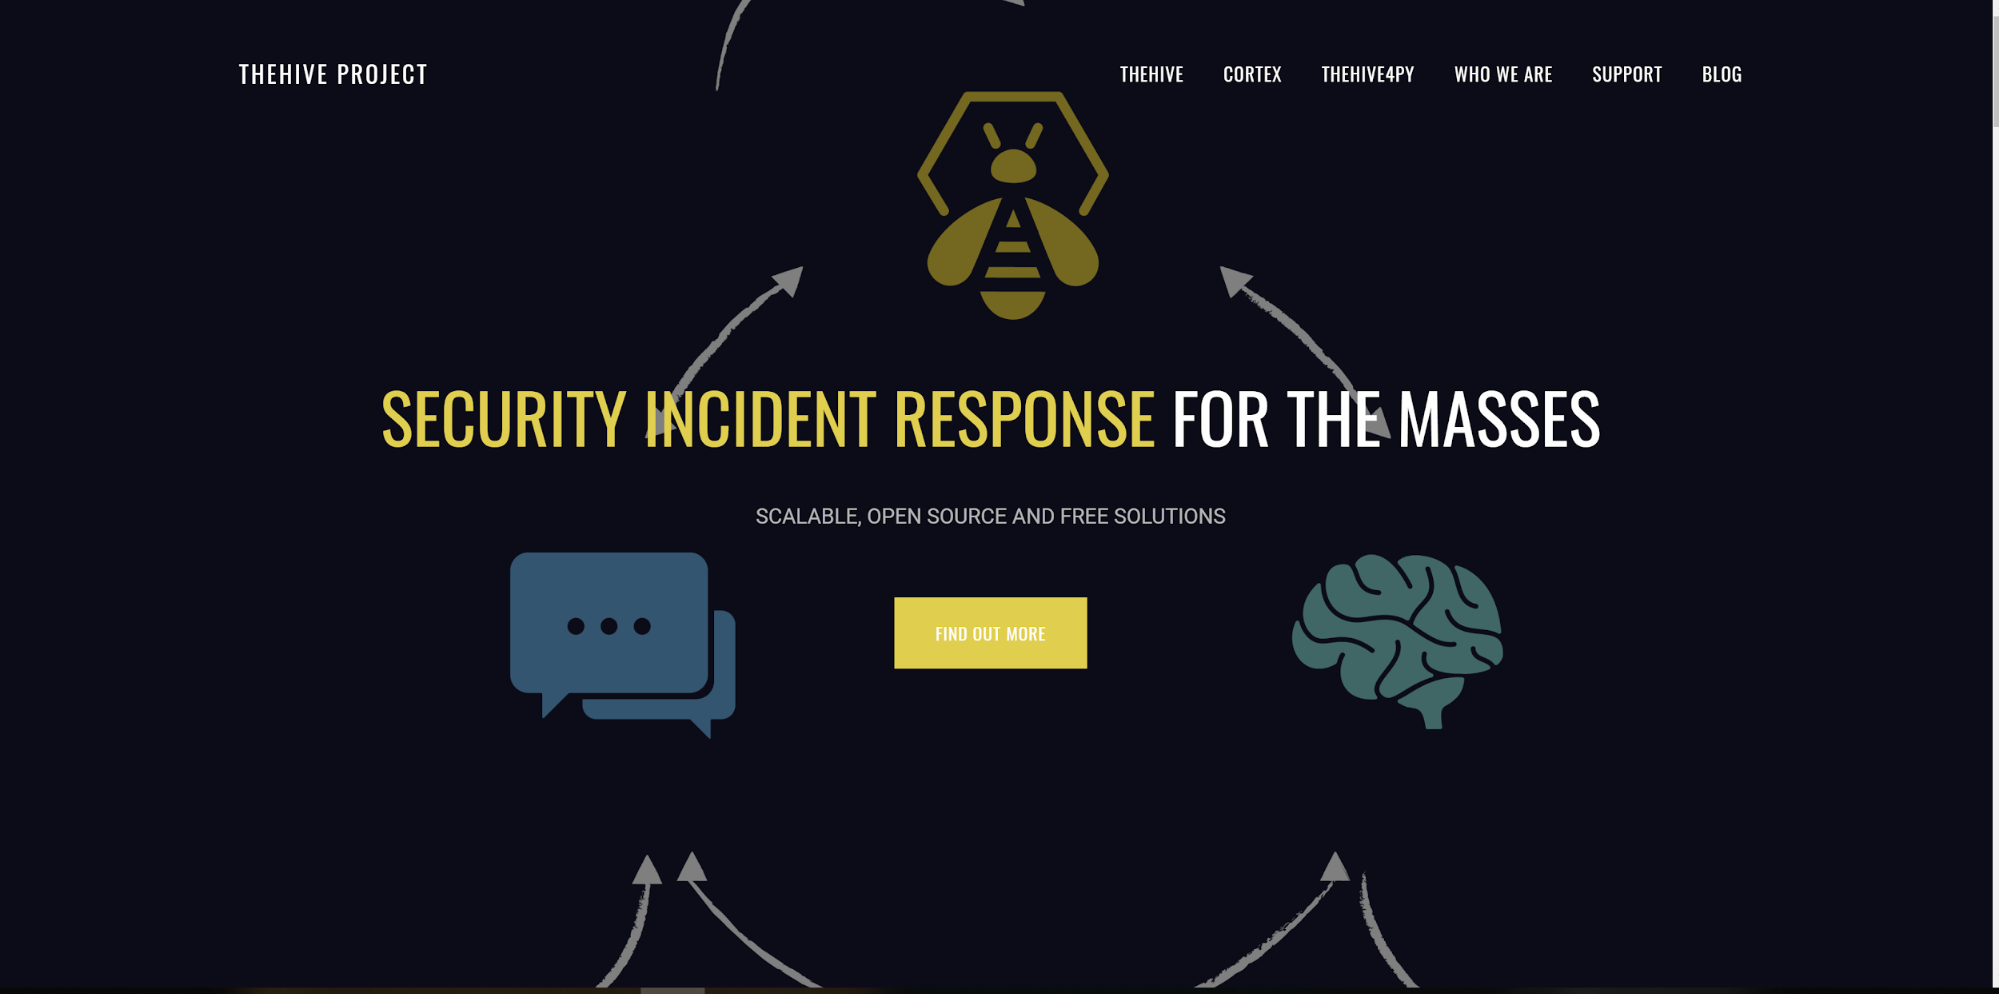 8 Free Tools to Automate Your Incident Response Process by Gilad David Maayan